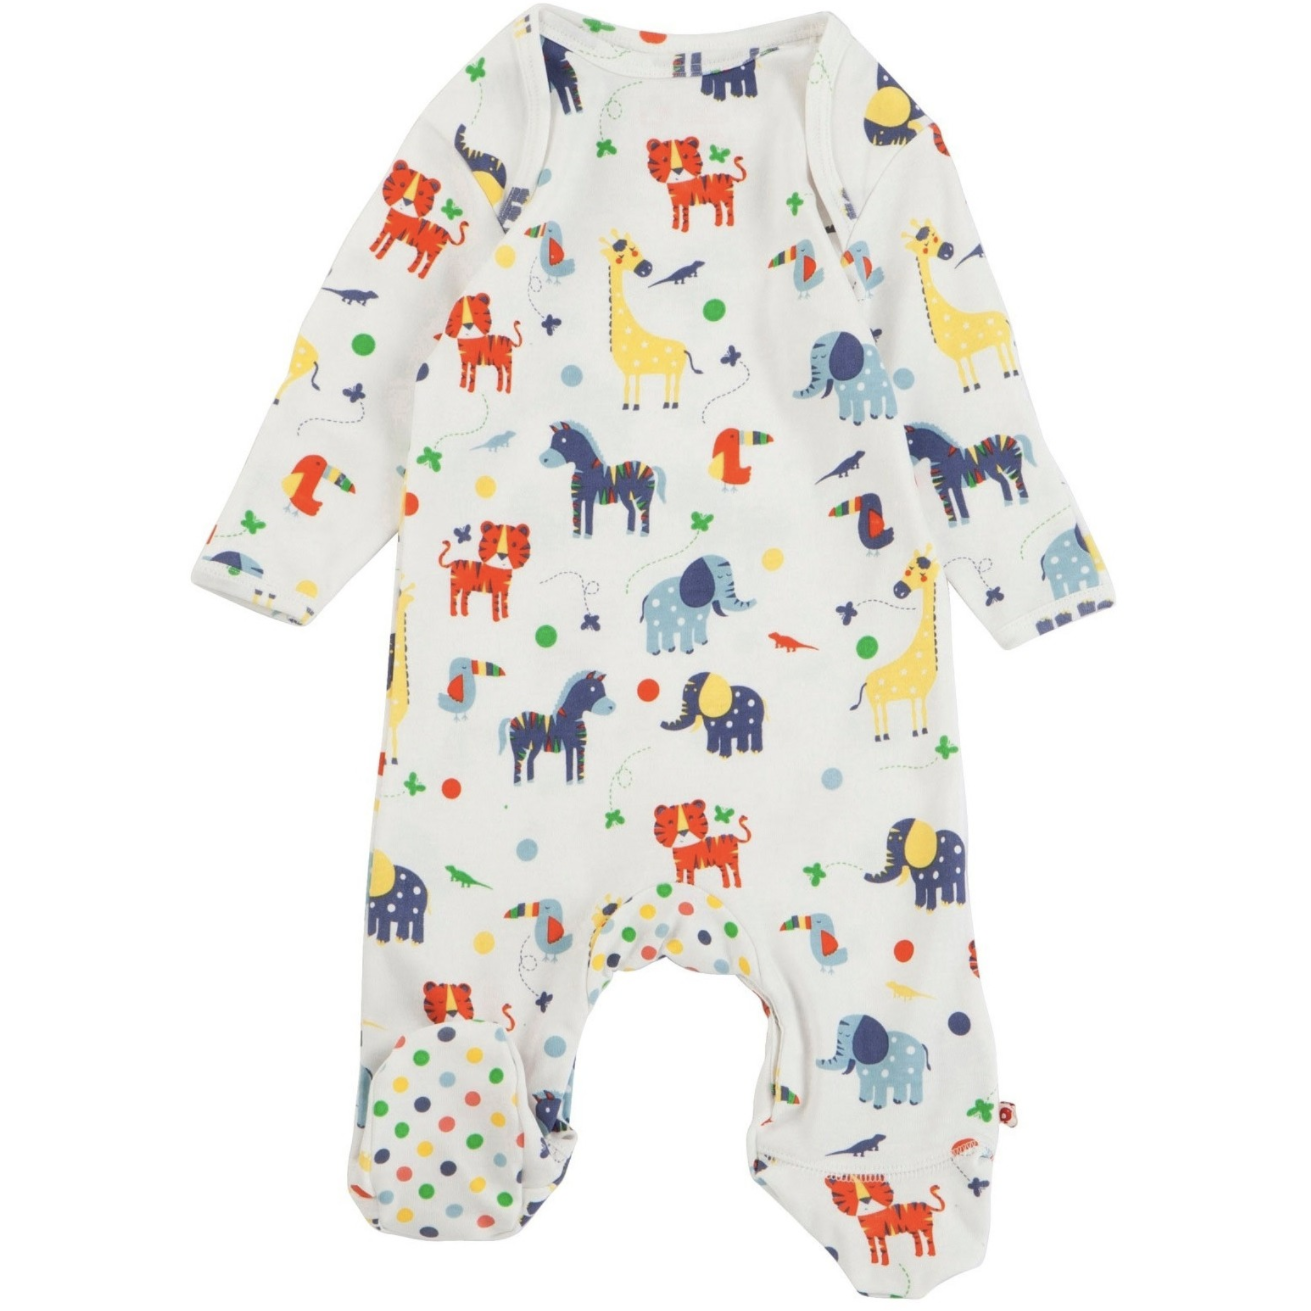 a83f00536 Piccalilly Sleepsuit I CoCoKidoo Leading Organic Baby Clothes ...